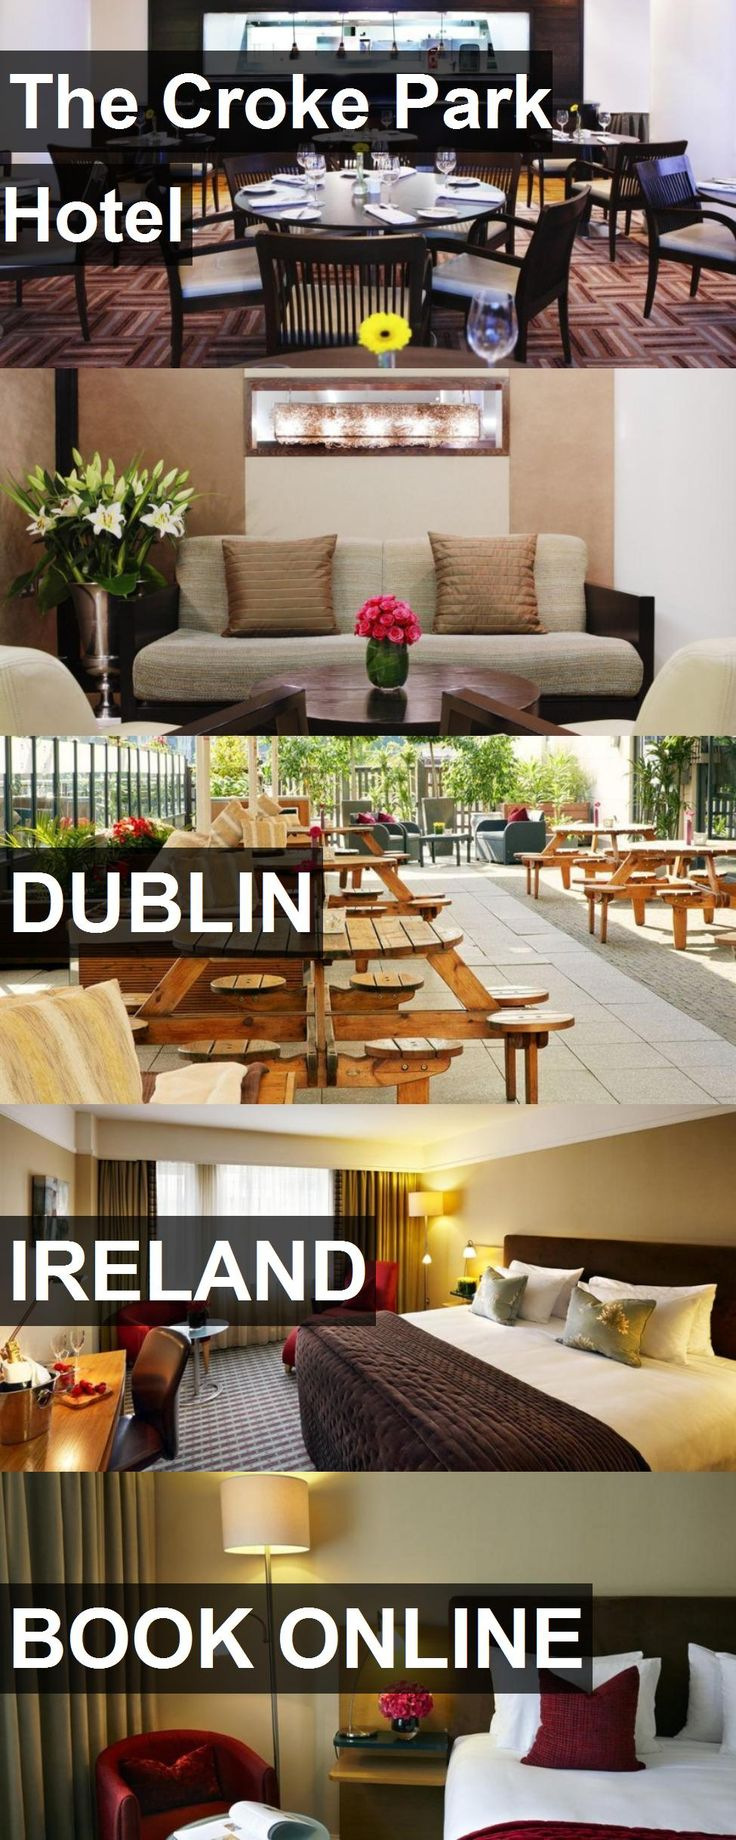 The Croke Park Hotel in Dublin, Ireland. For more information, photos, reviews and best prices please follow the link. #Ireland #Dublin #travel #vacation #hotel